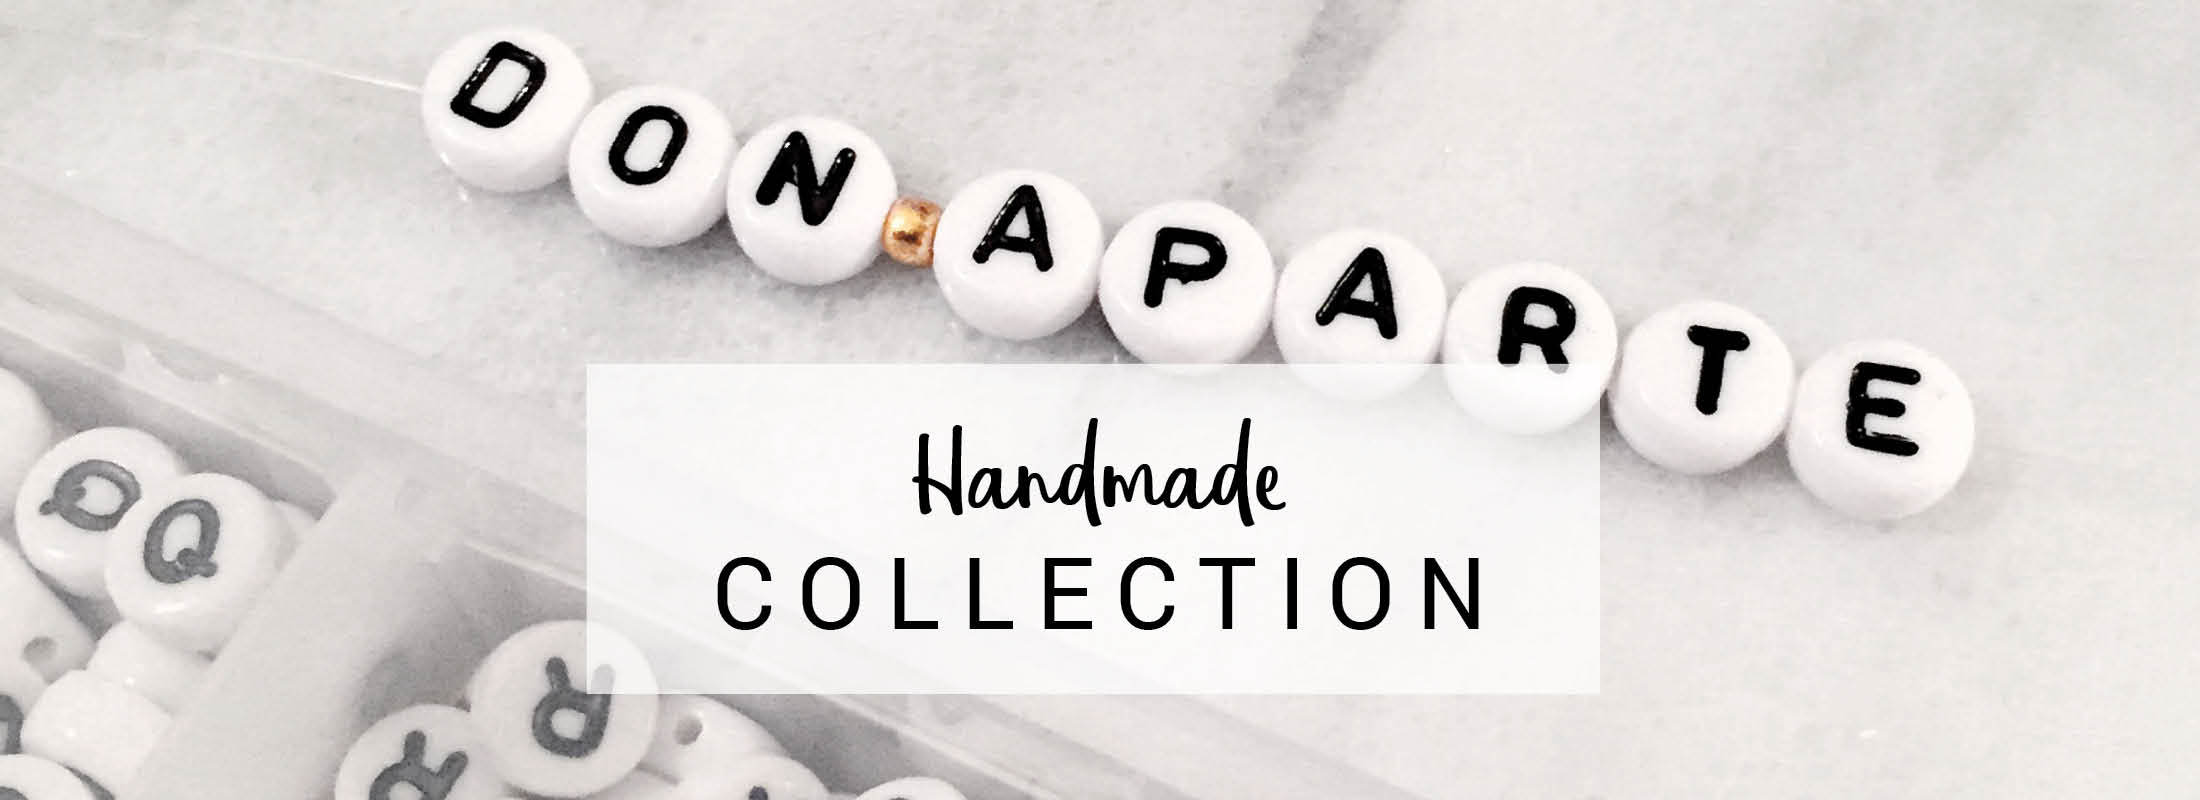 Handmade collection